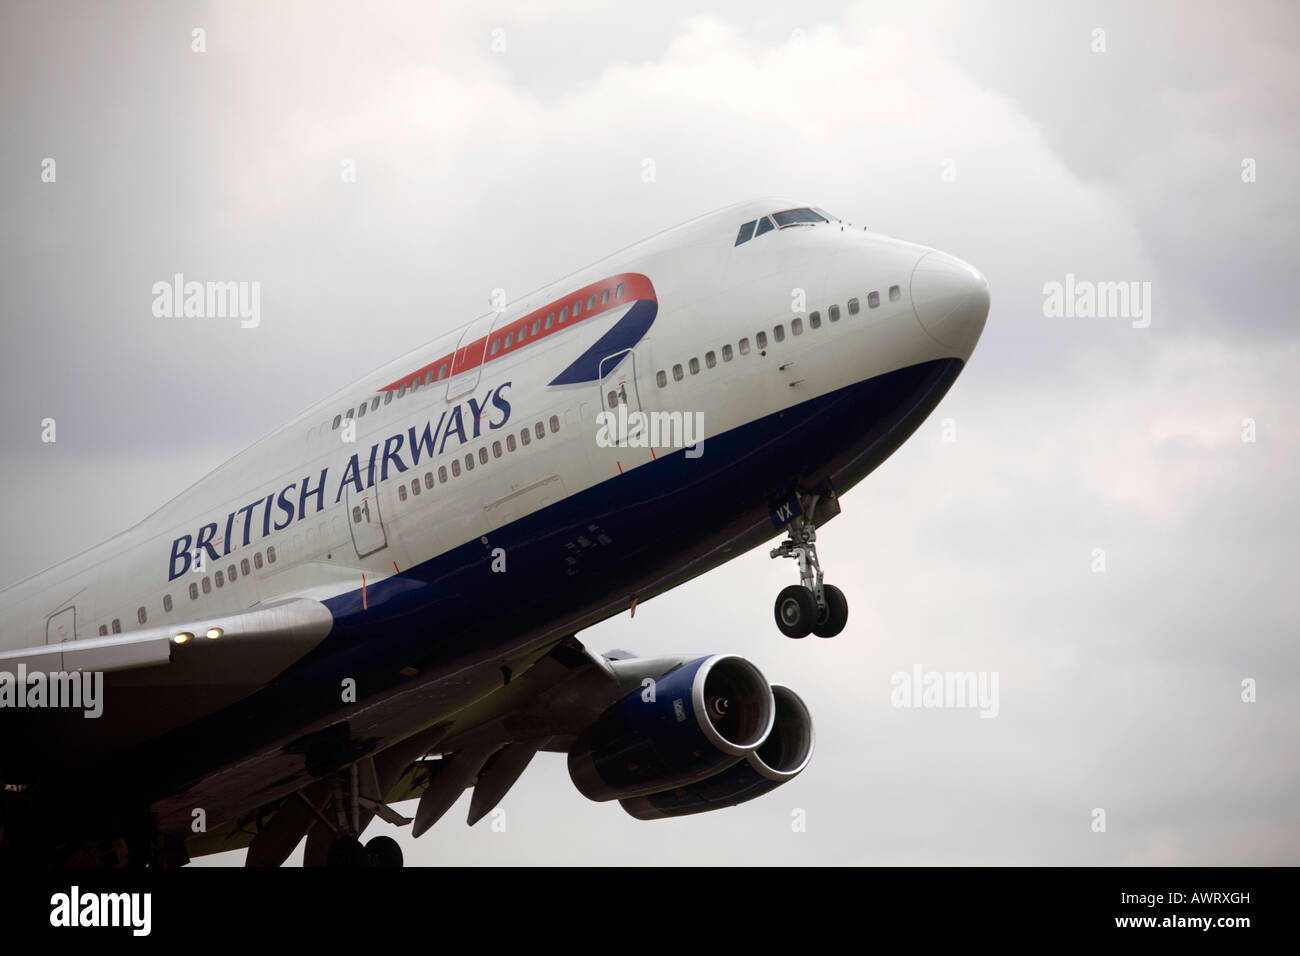 A British Airways Boeing Jumbo Jet takes off at London Heathrow Airport - Stock Image